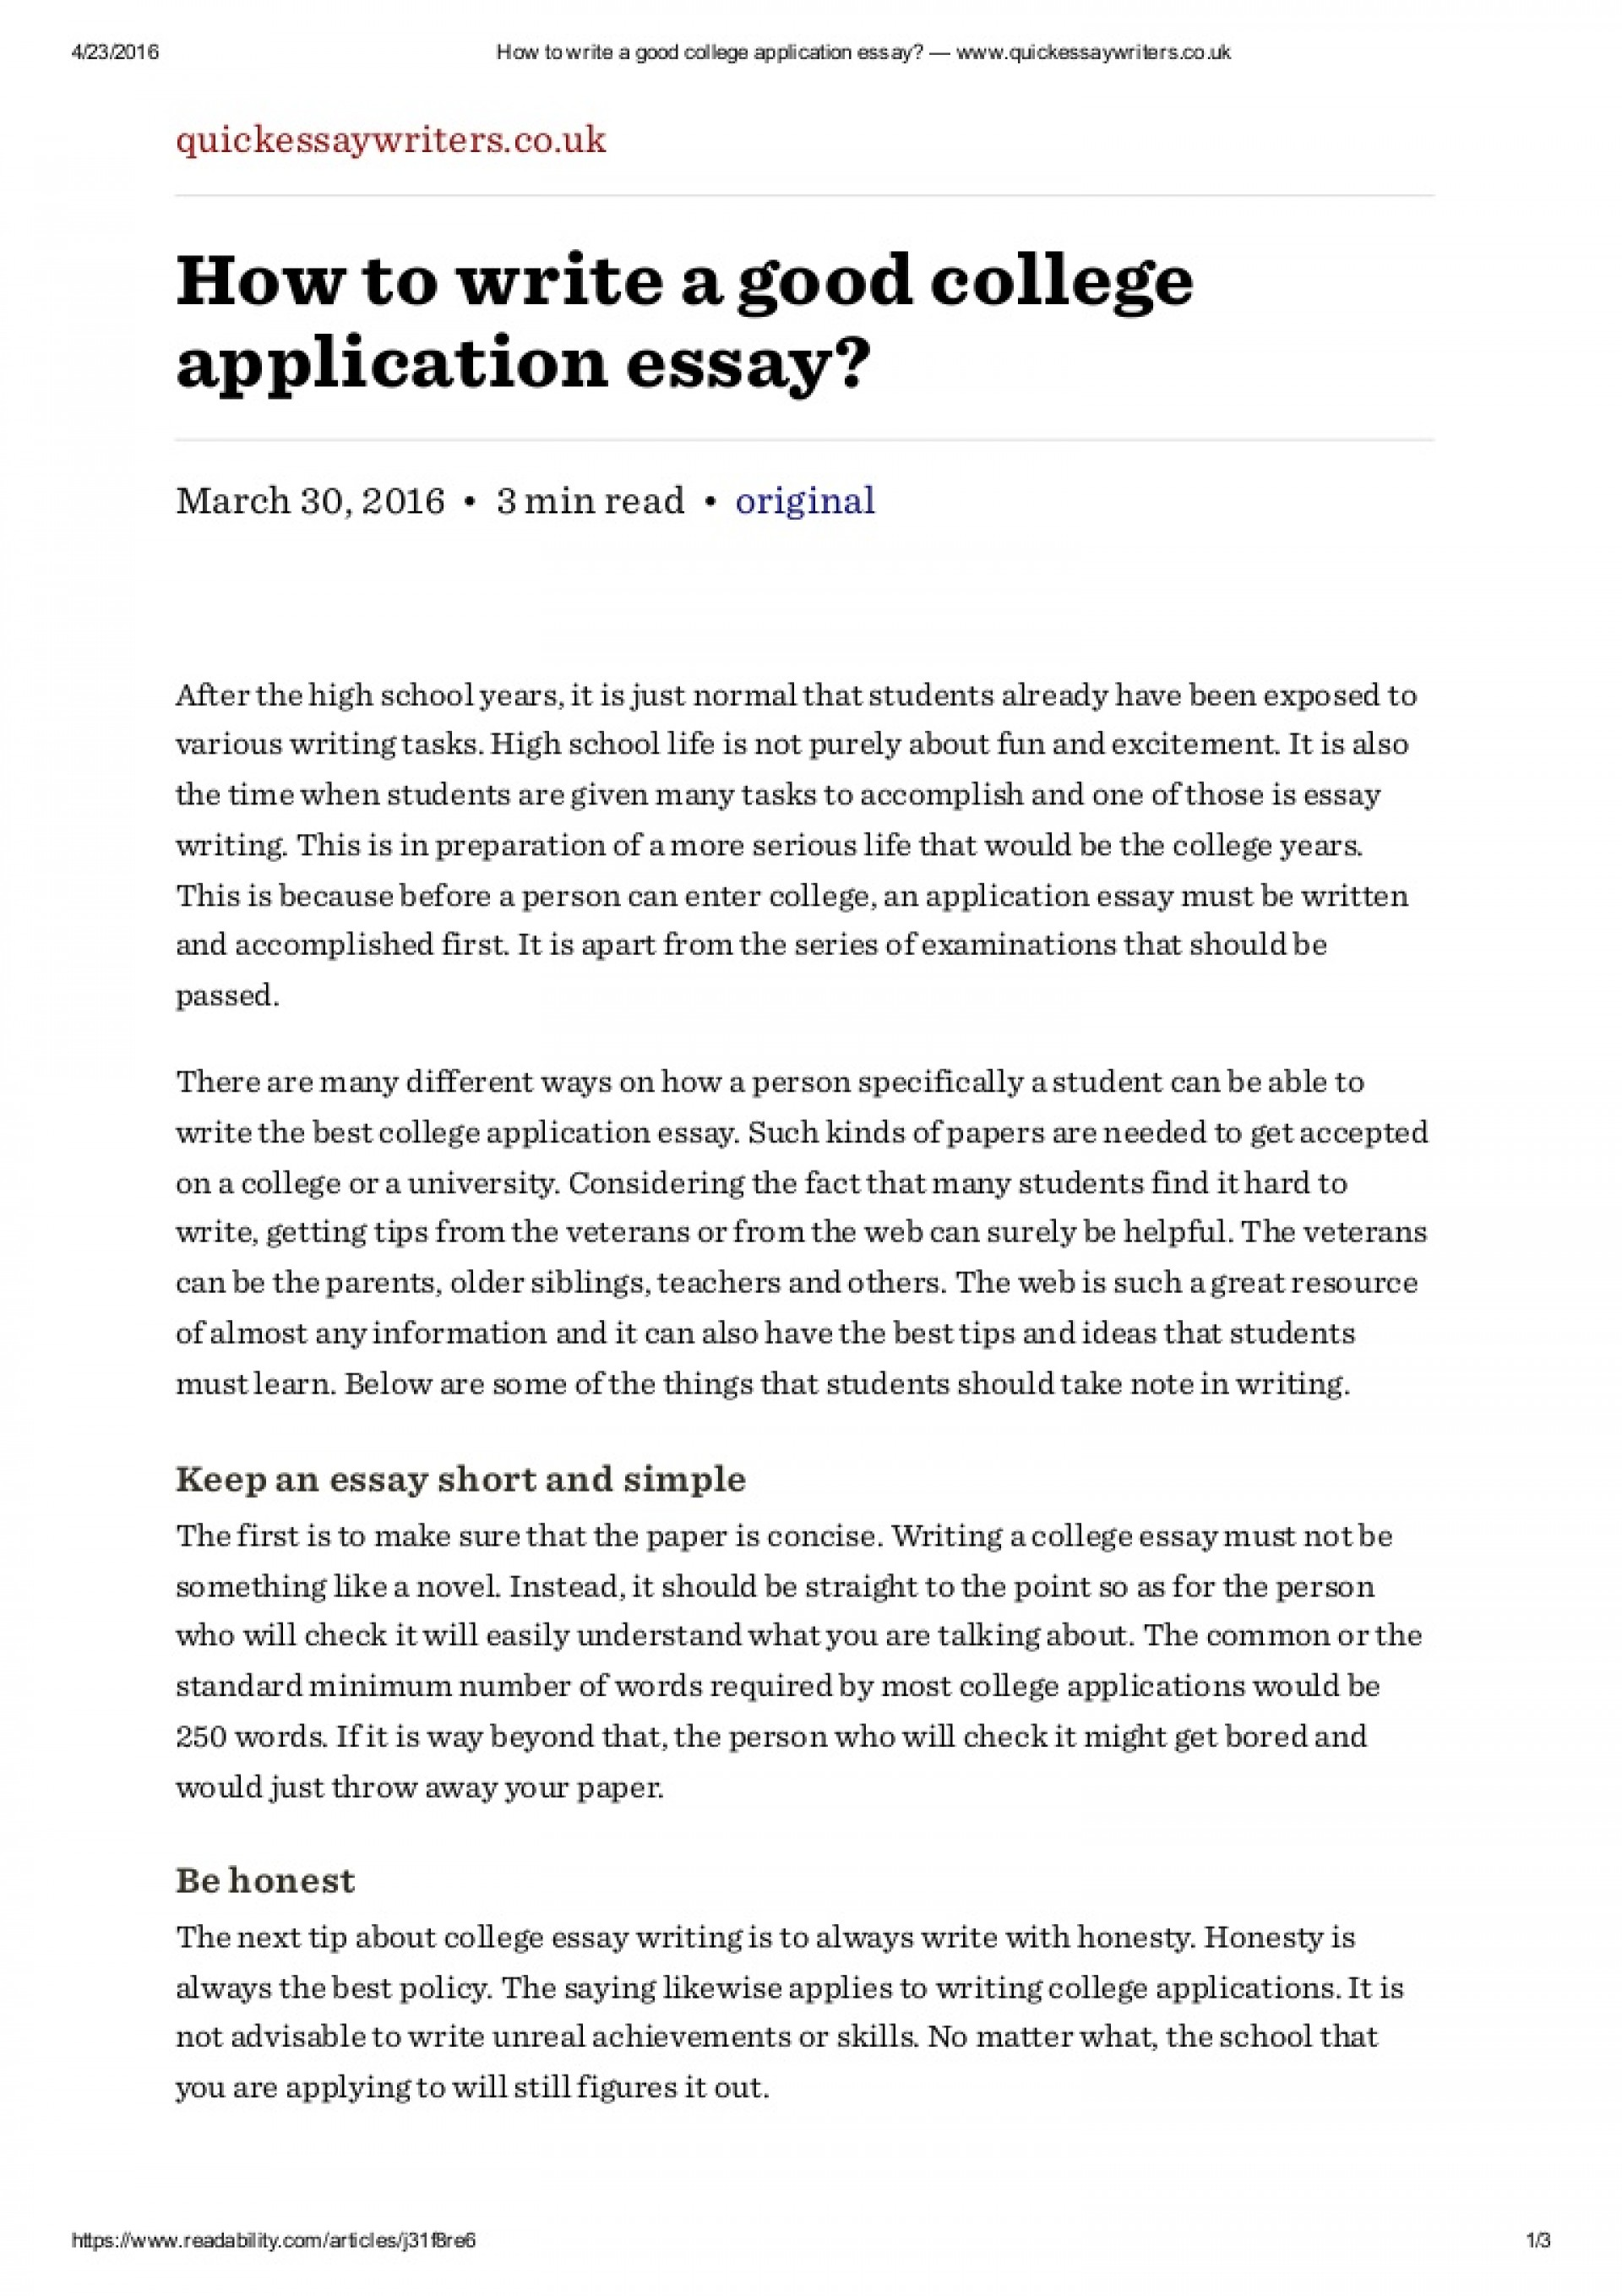 014 Howtowriteagoodcollegeapplicationessaywww Thumbnail College Acceptance Essay Striking Application Template App Topics Samples 1920